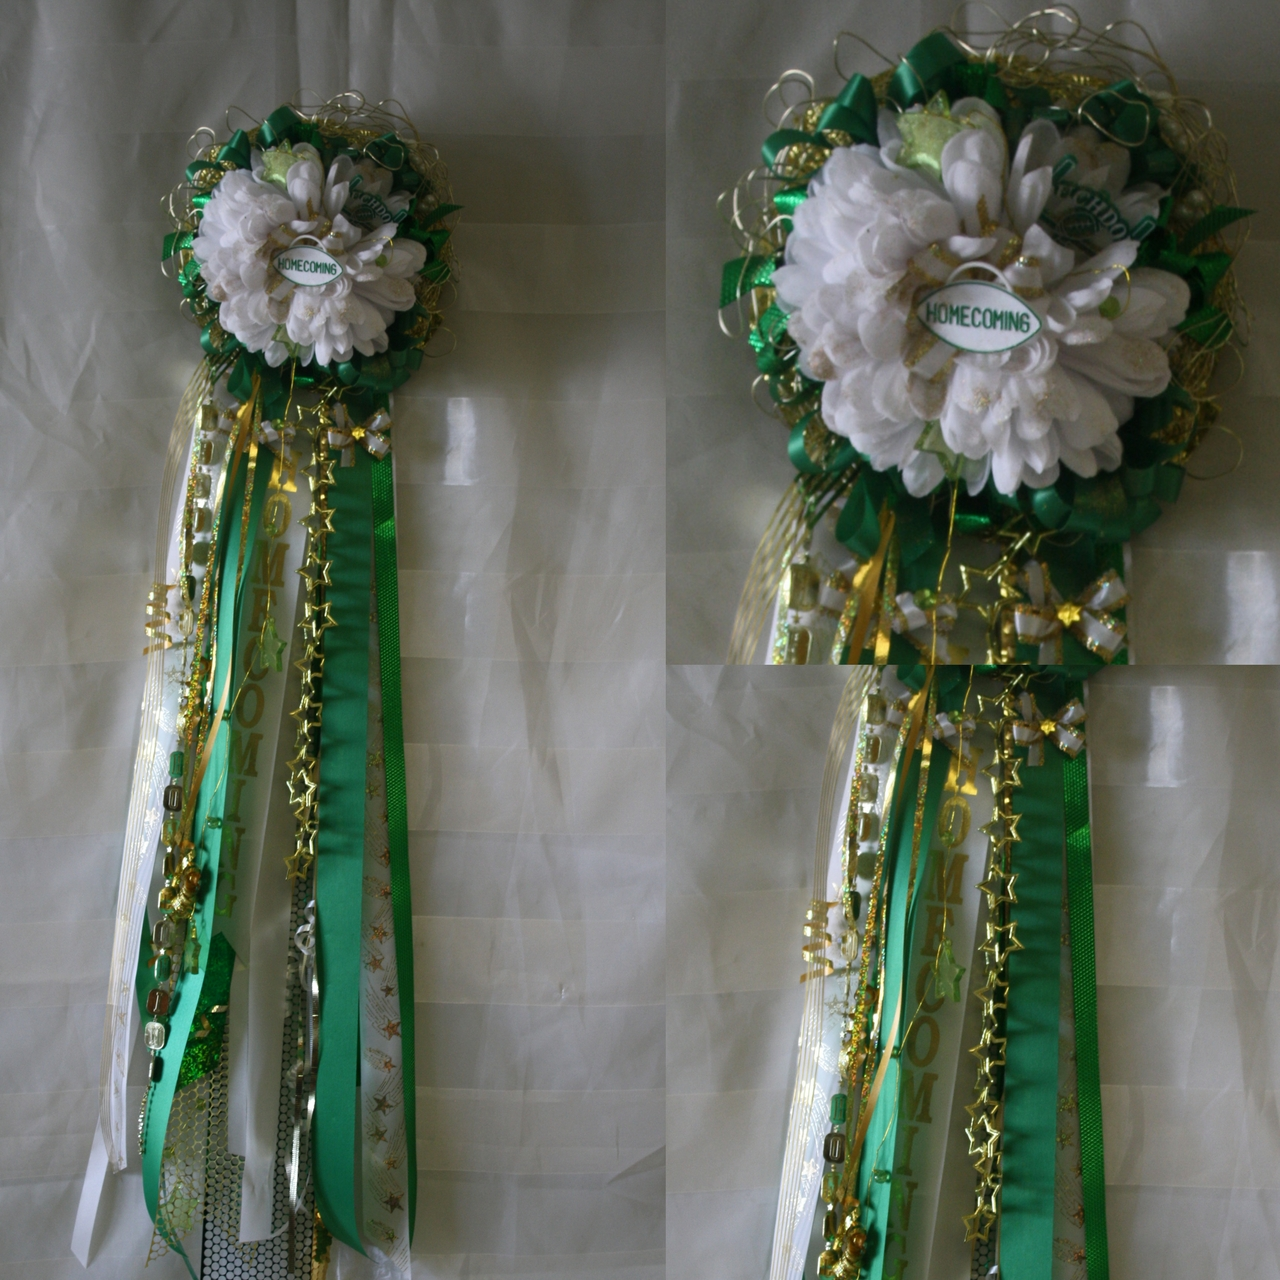 Pasadena High School Homecoming Mums for sale 2